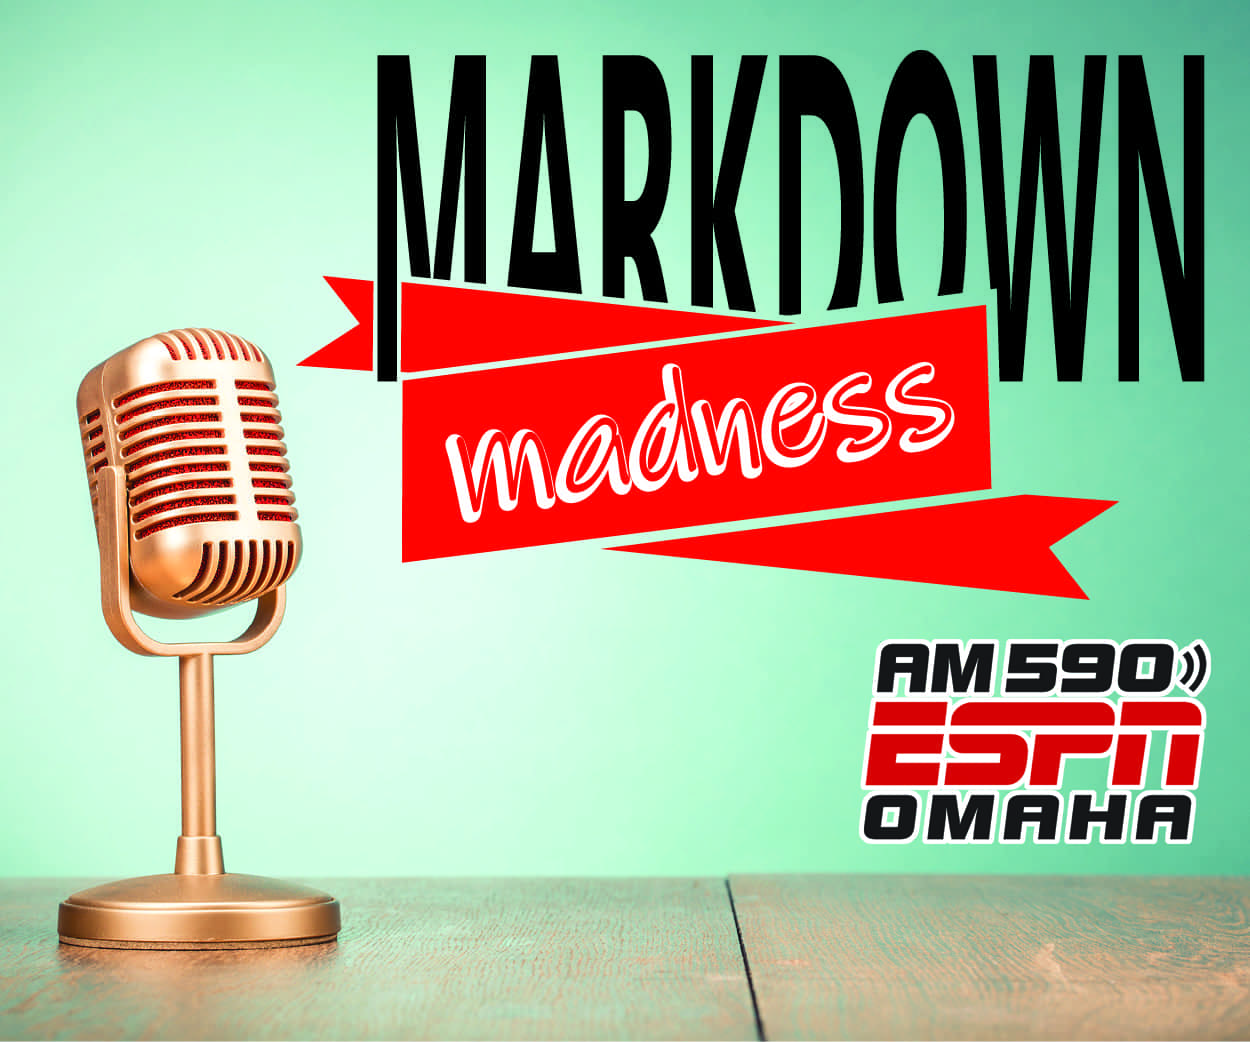 markdown-madness-NEW-590